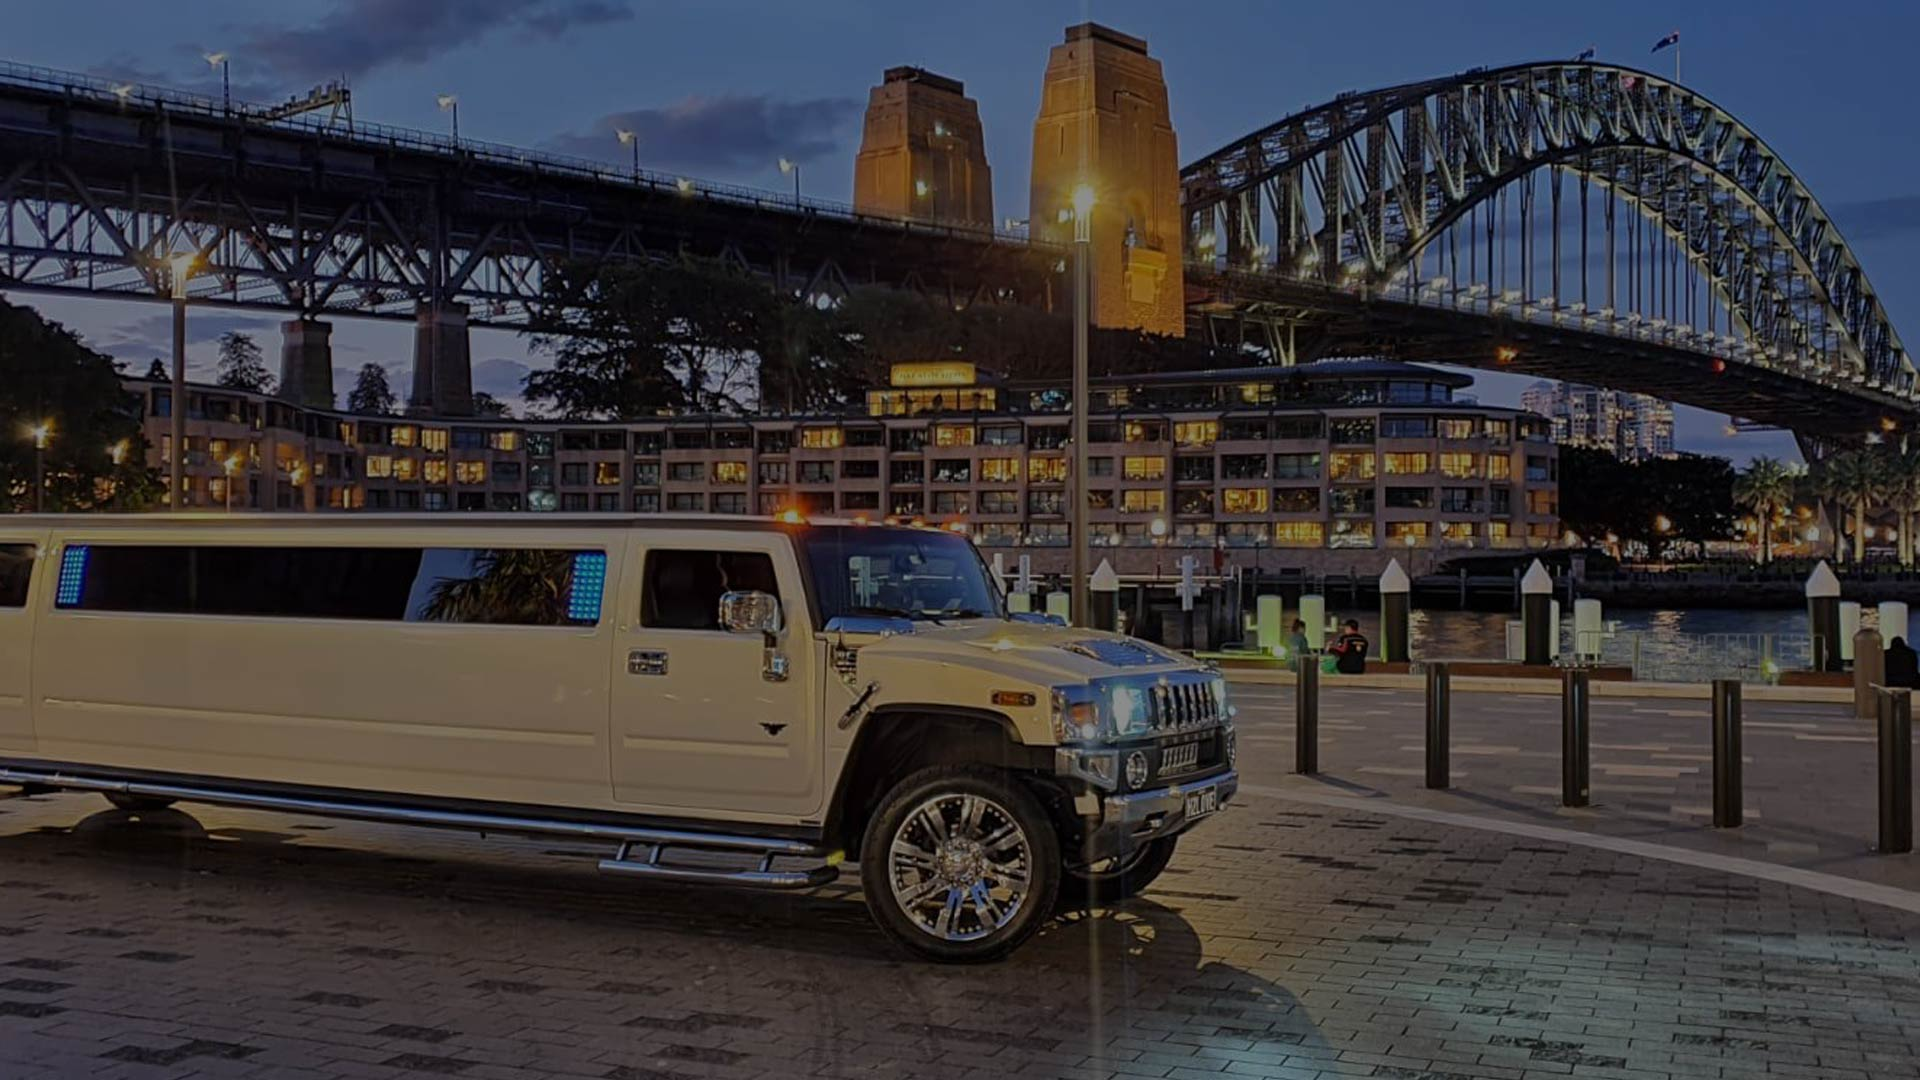 Hummer hire in Sydney